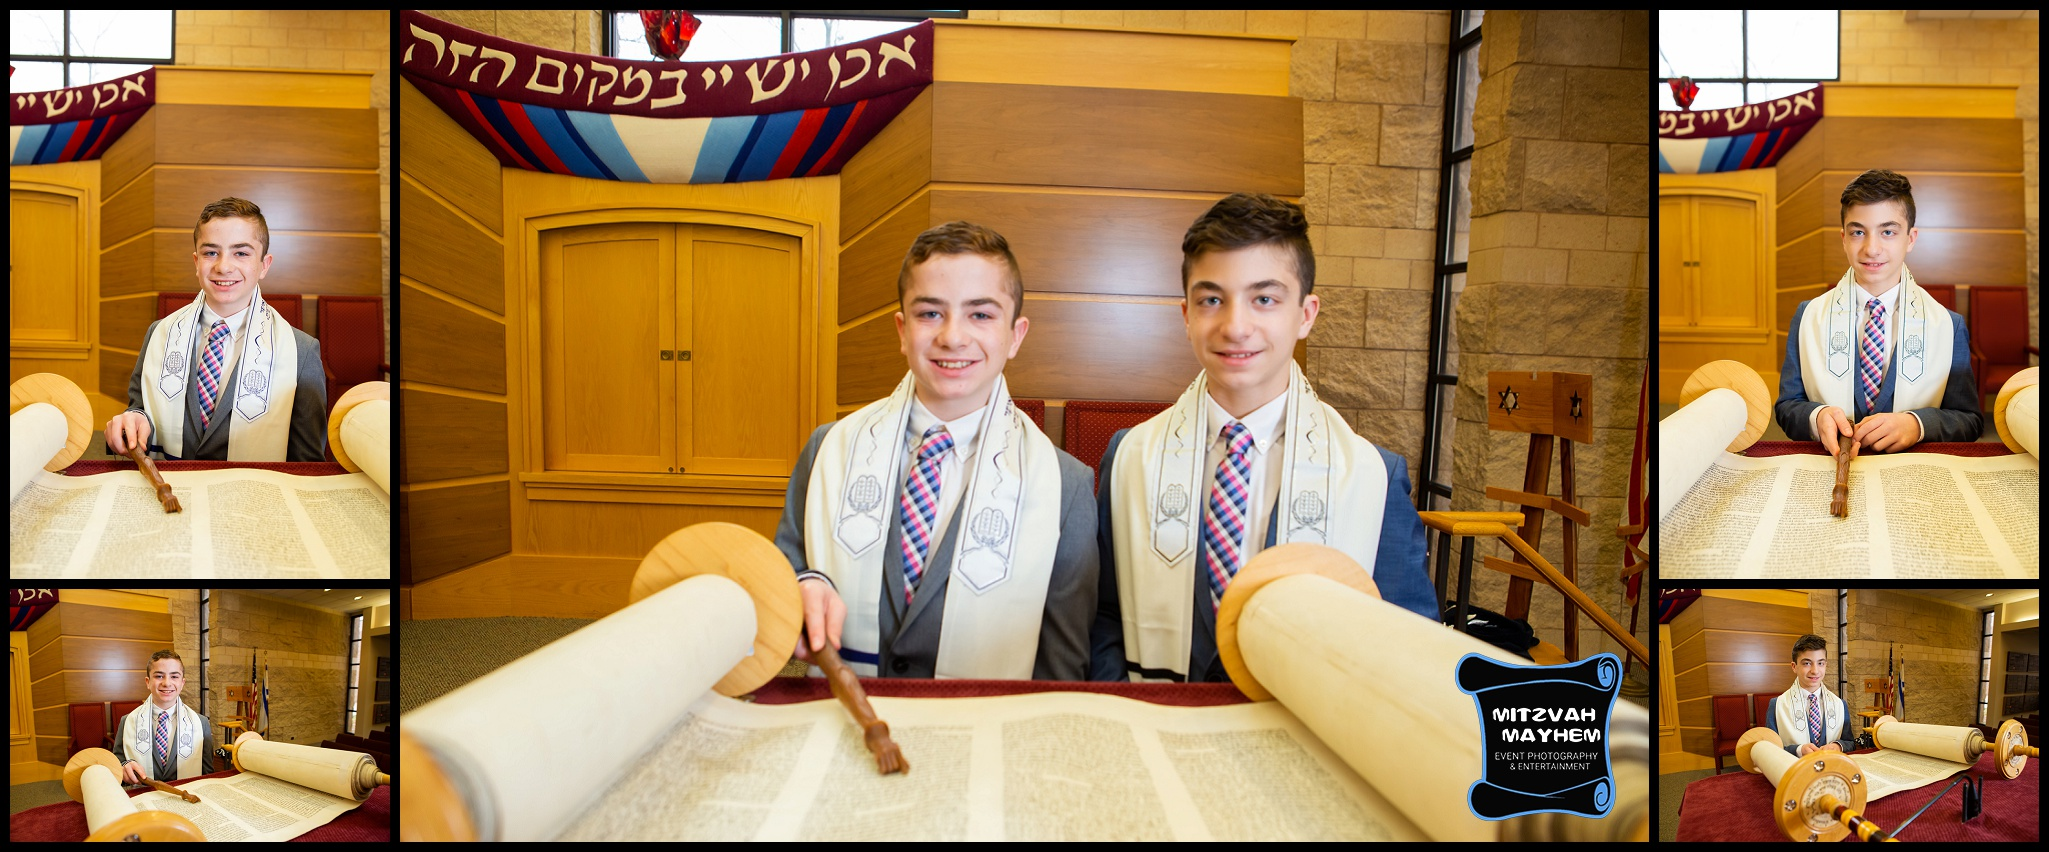 nj-mitzvah-photographer-temple-beth-el-3.JPG